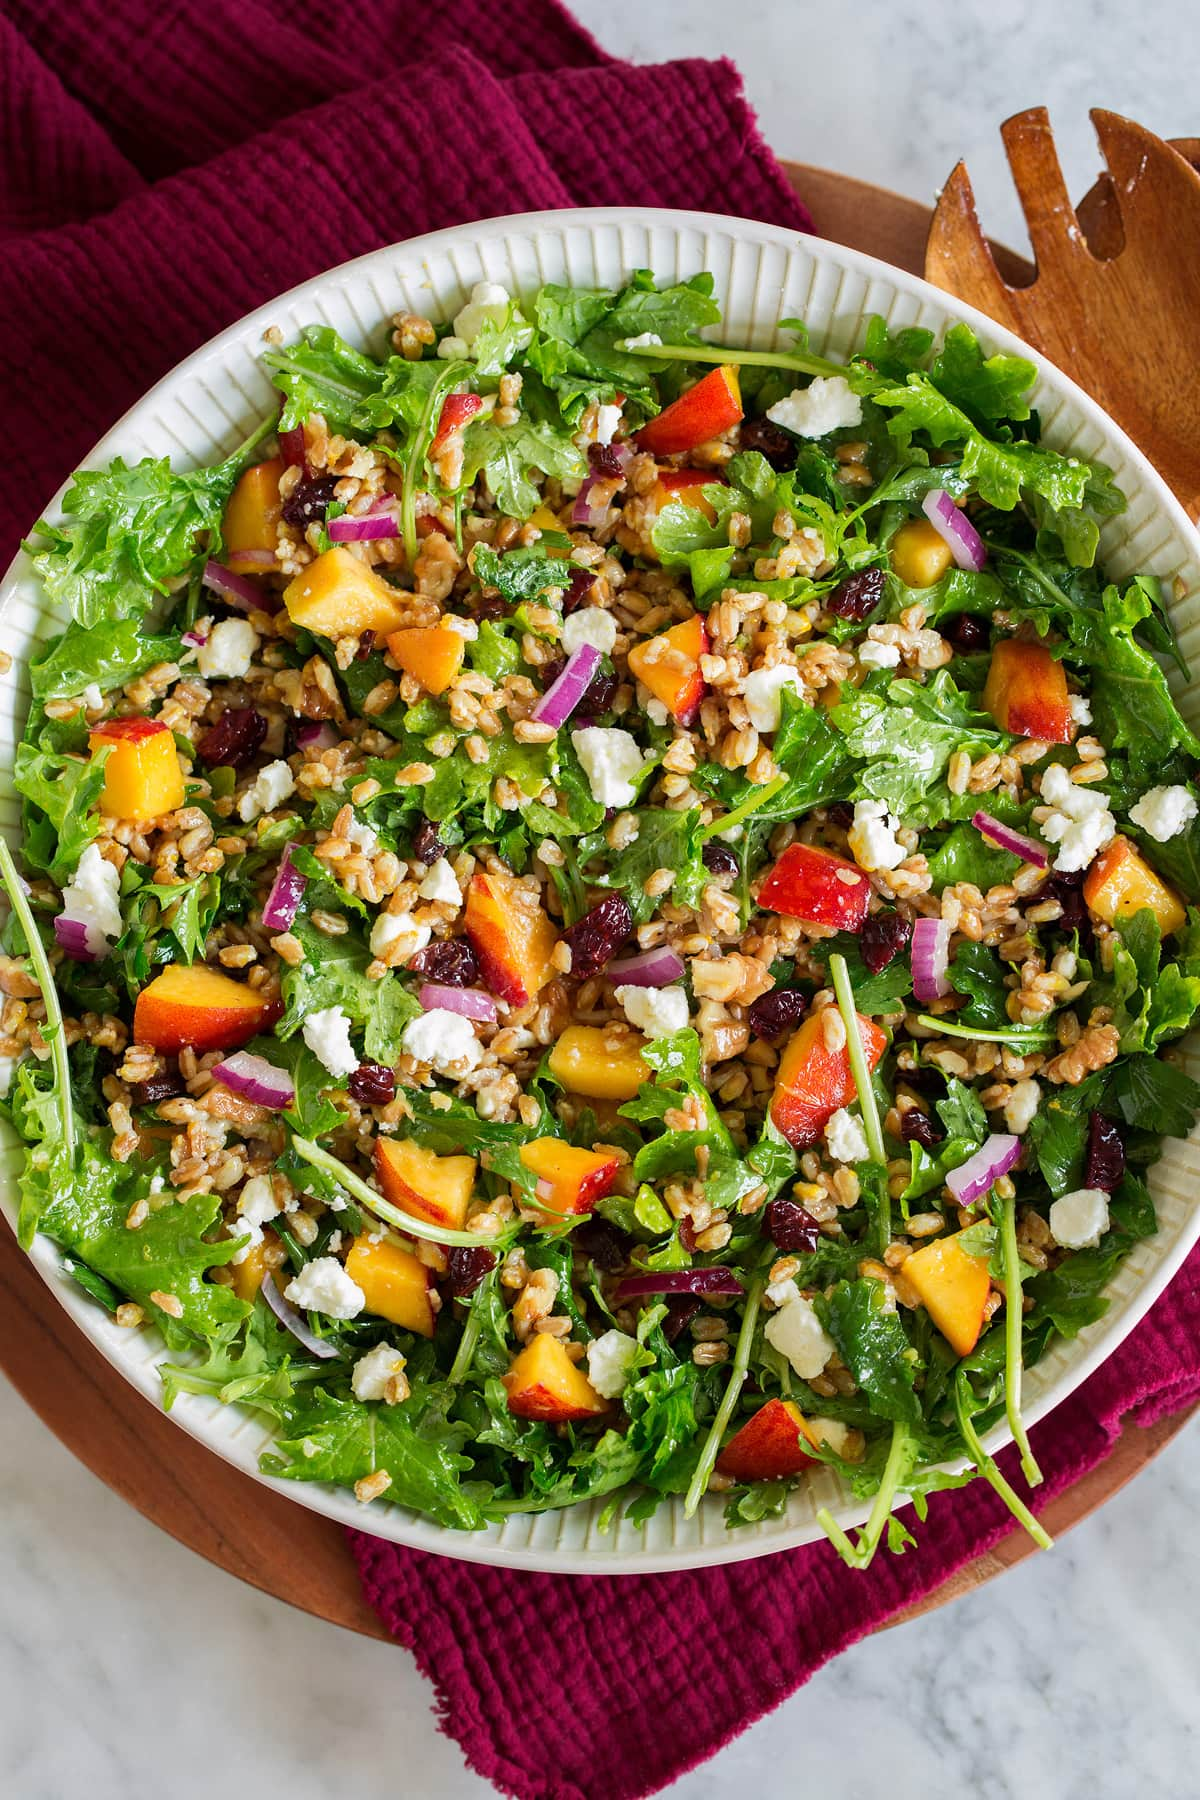 Photo: Farro Salad with peaches, dried cherries, kale, feta and red onion shown in a white serving bowl on a red cloth.